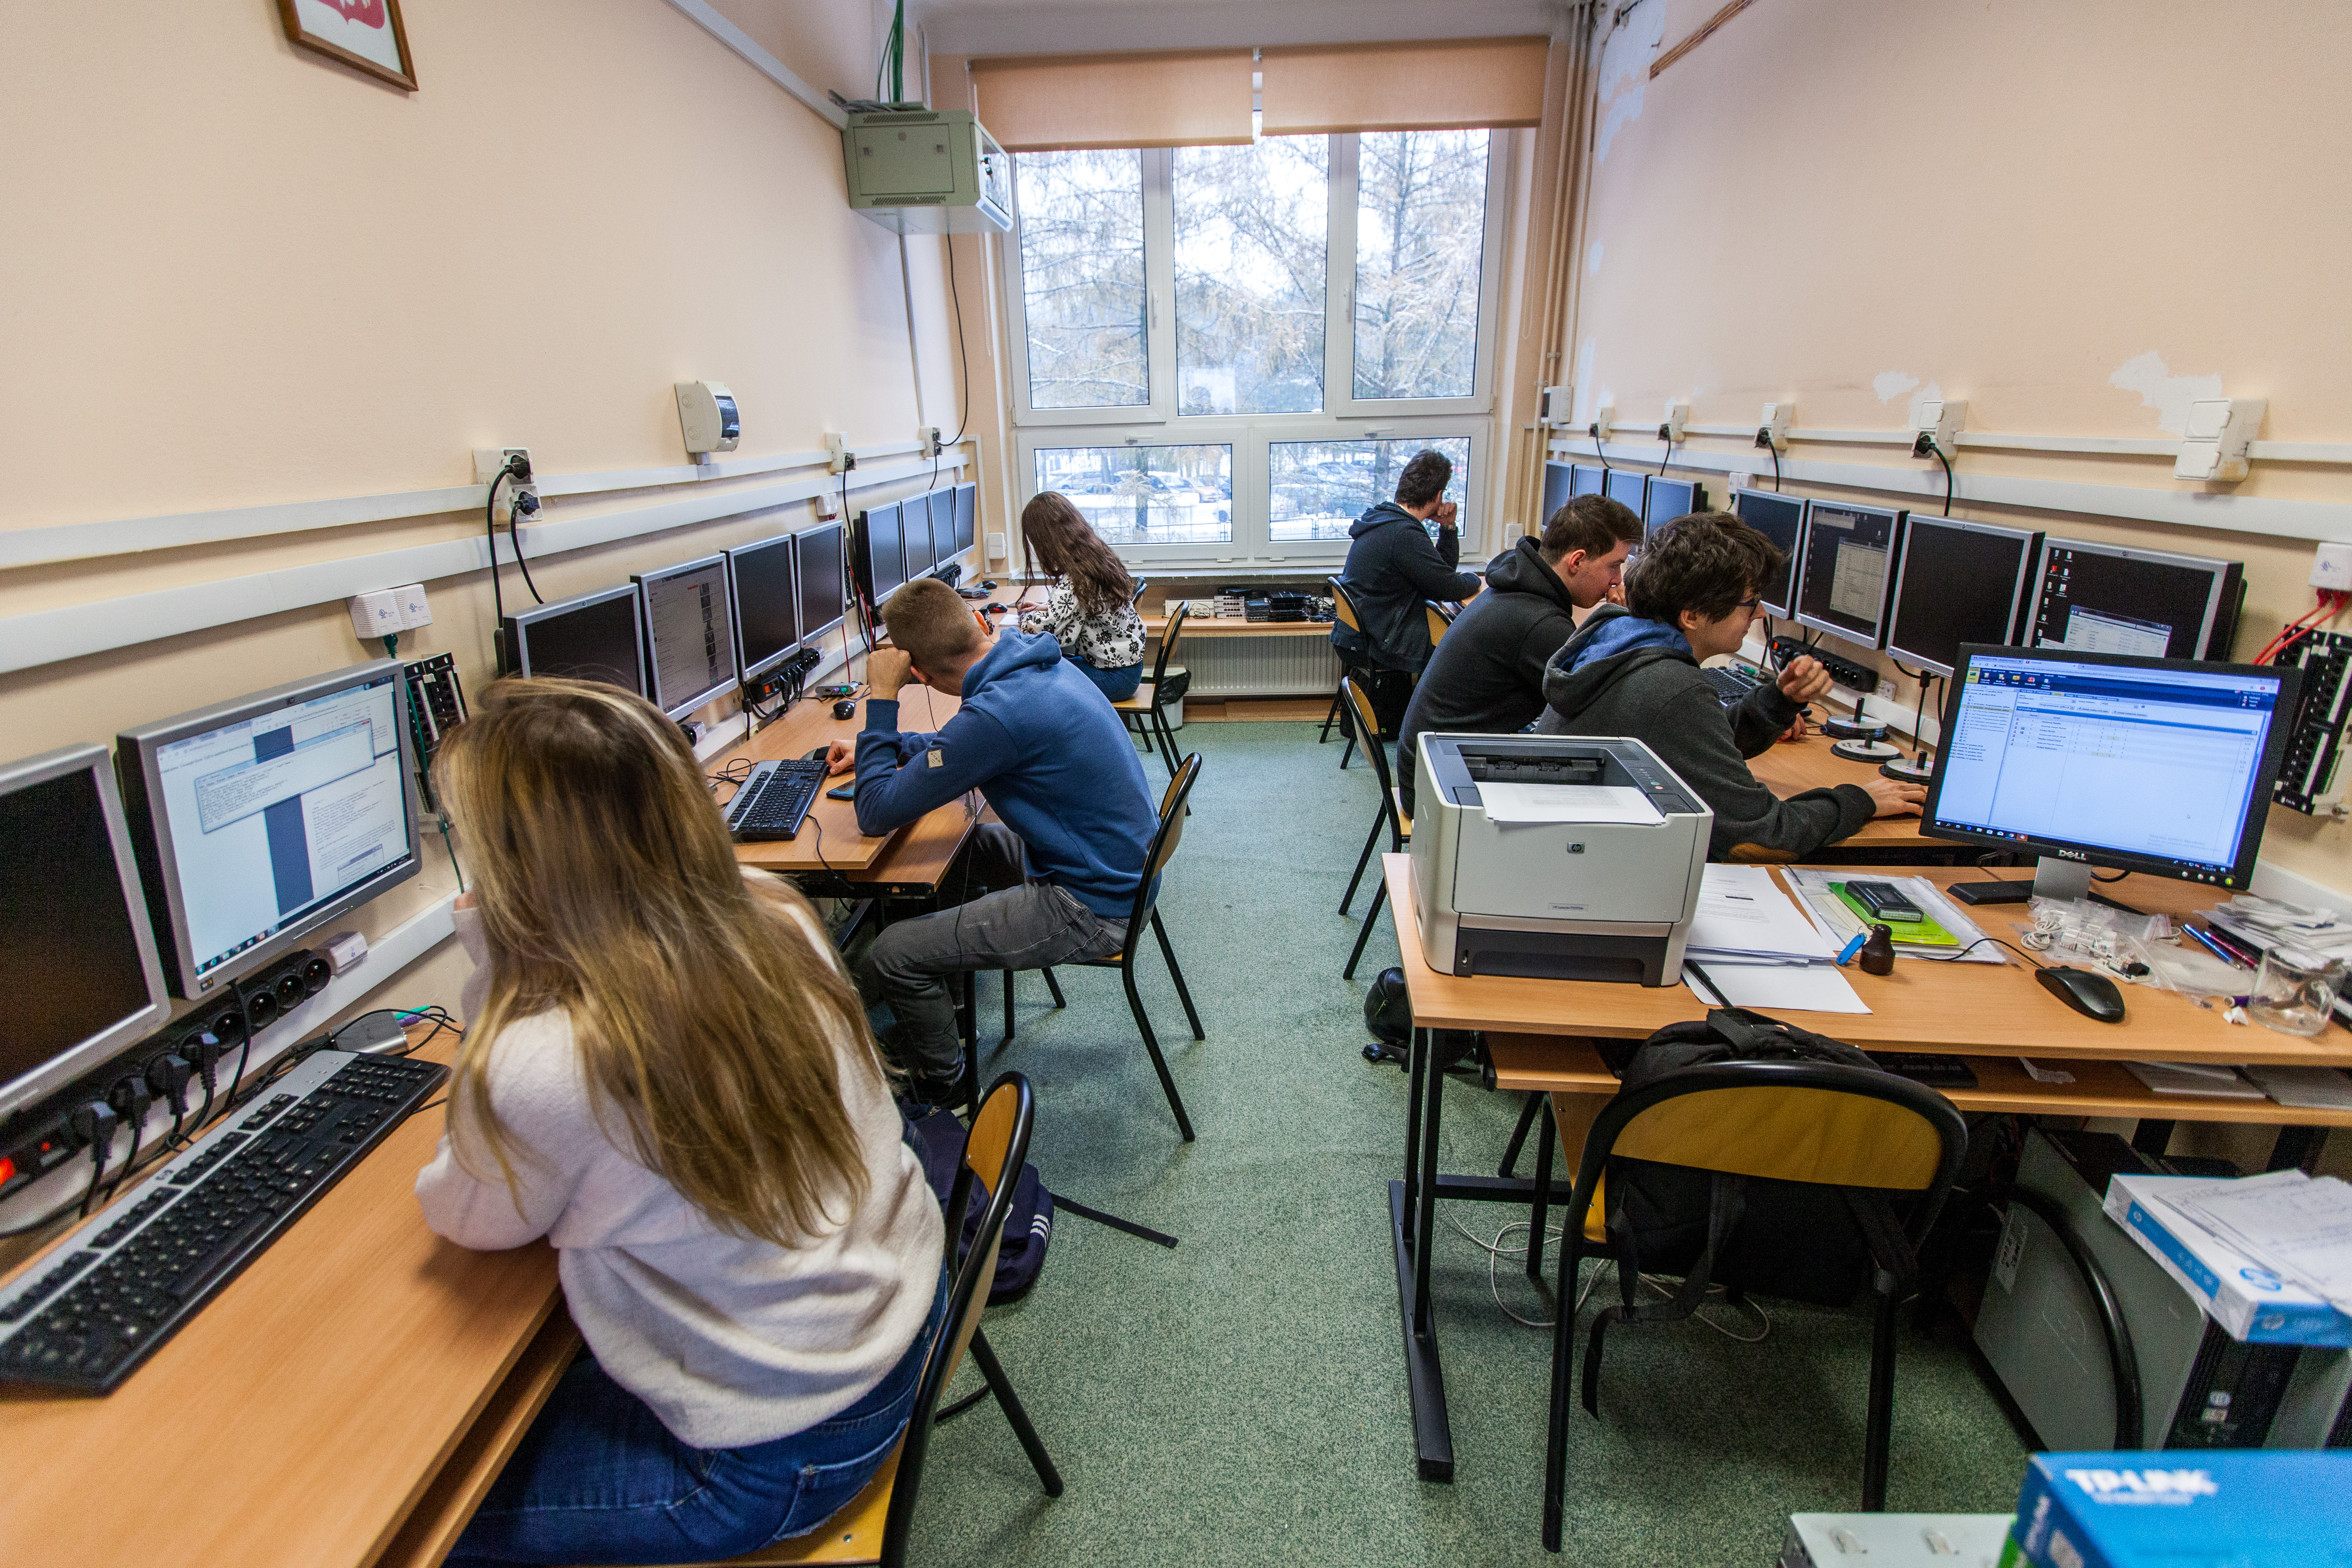 Group of students in a computer laboratory (ICT computer education).